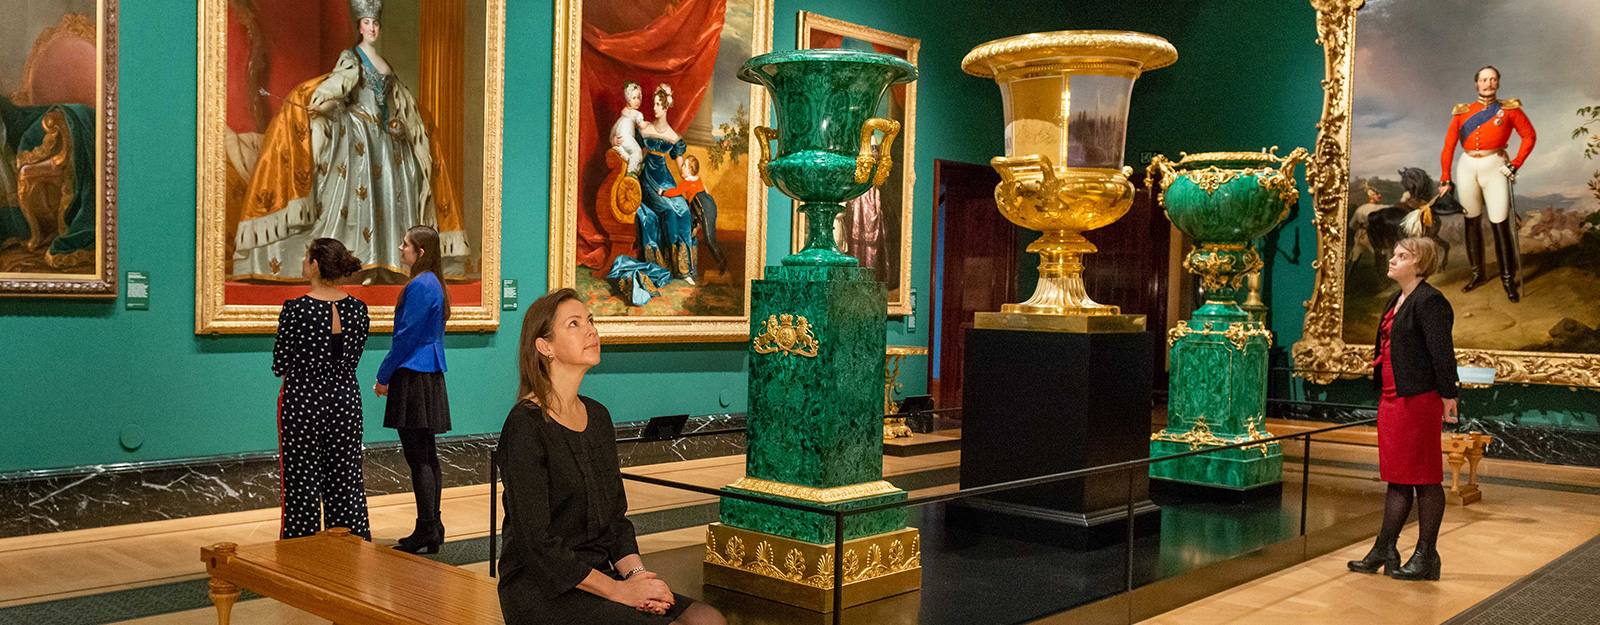 'Russia, Royalty & the Romanovs' at The Queen's Gallery